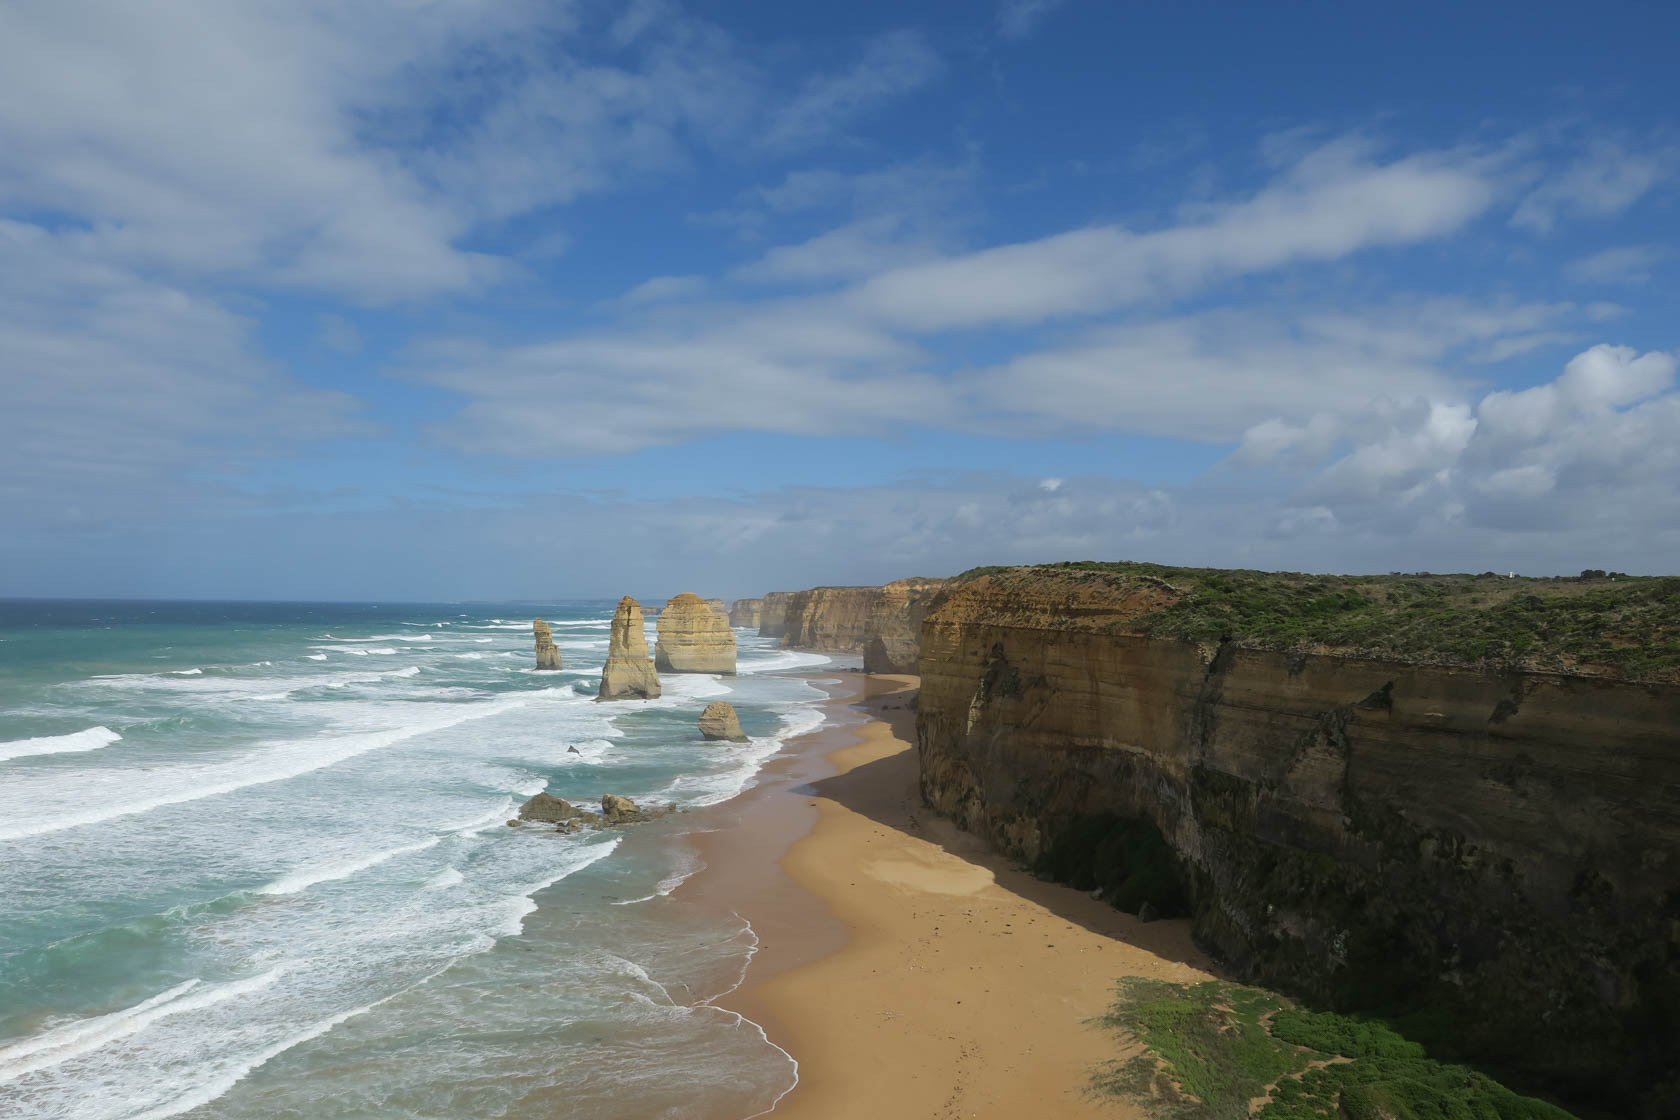 Twelve apostles taken on the Canon PowerShot G3 X digital camera